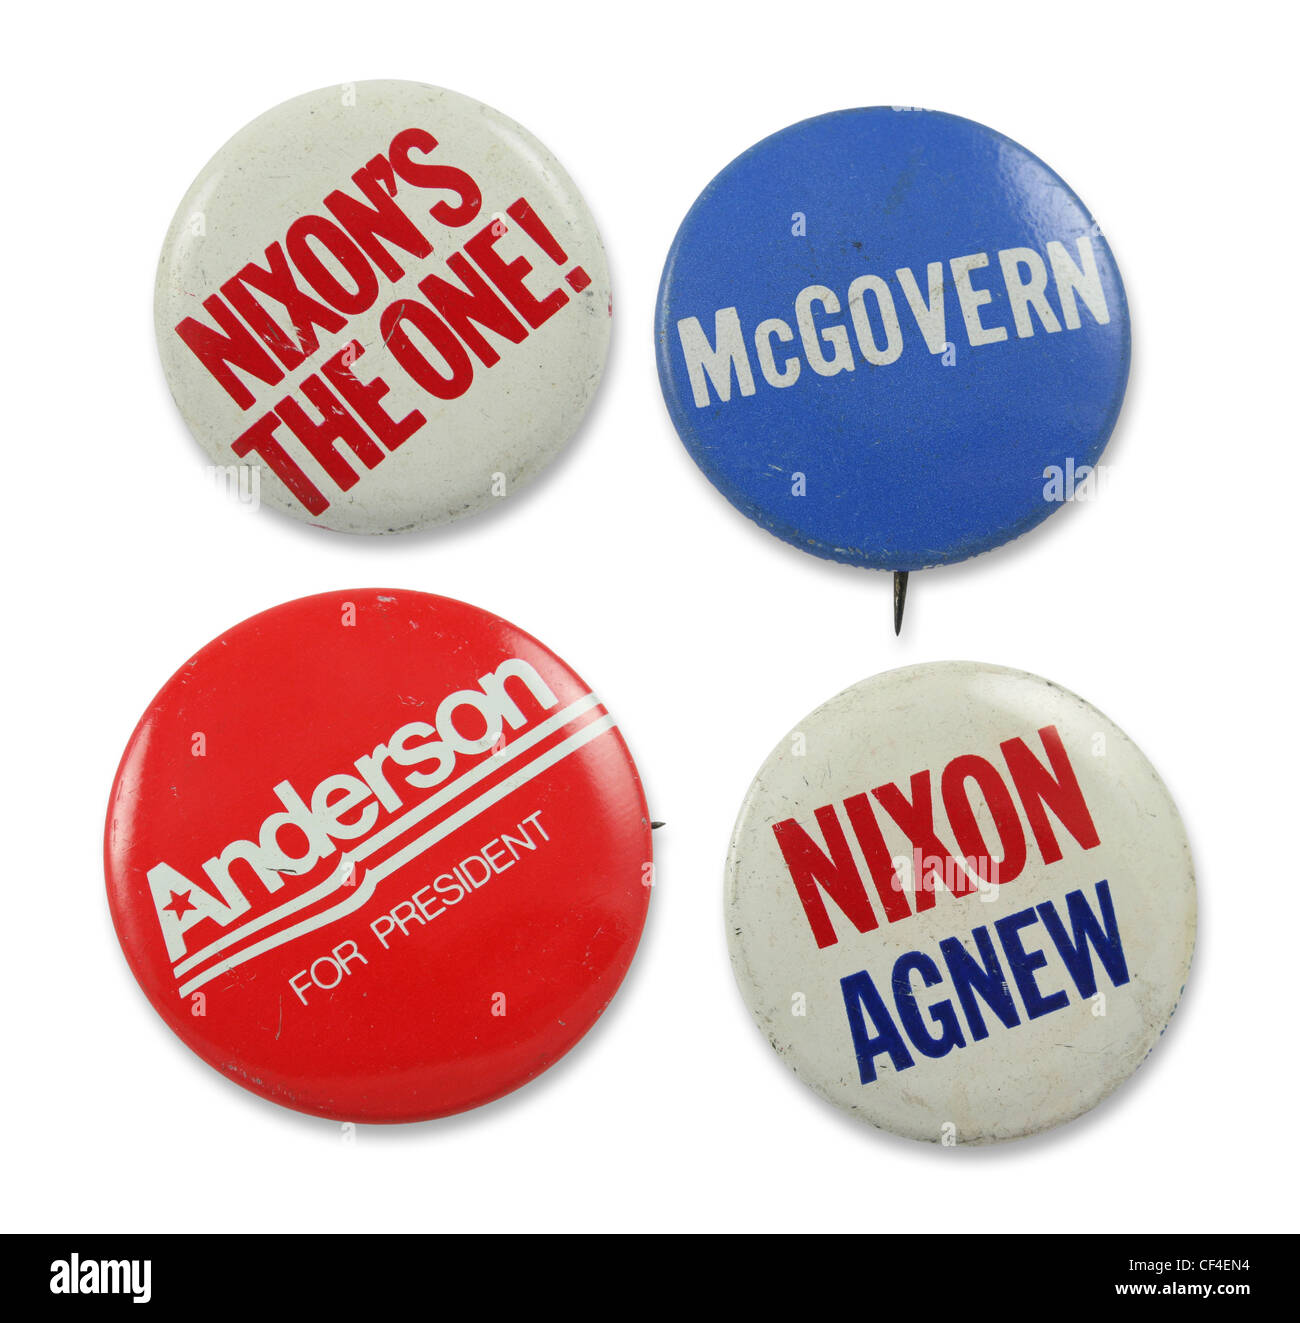 Group of assorted 1960s and 1970s political pins. - Stock Image